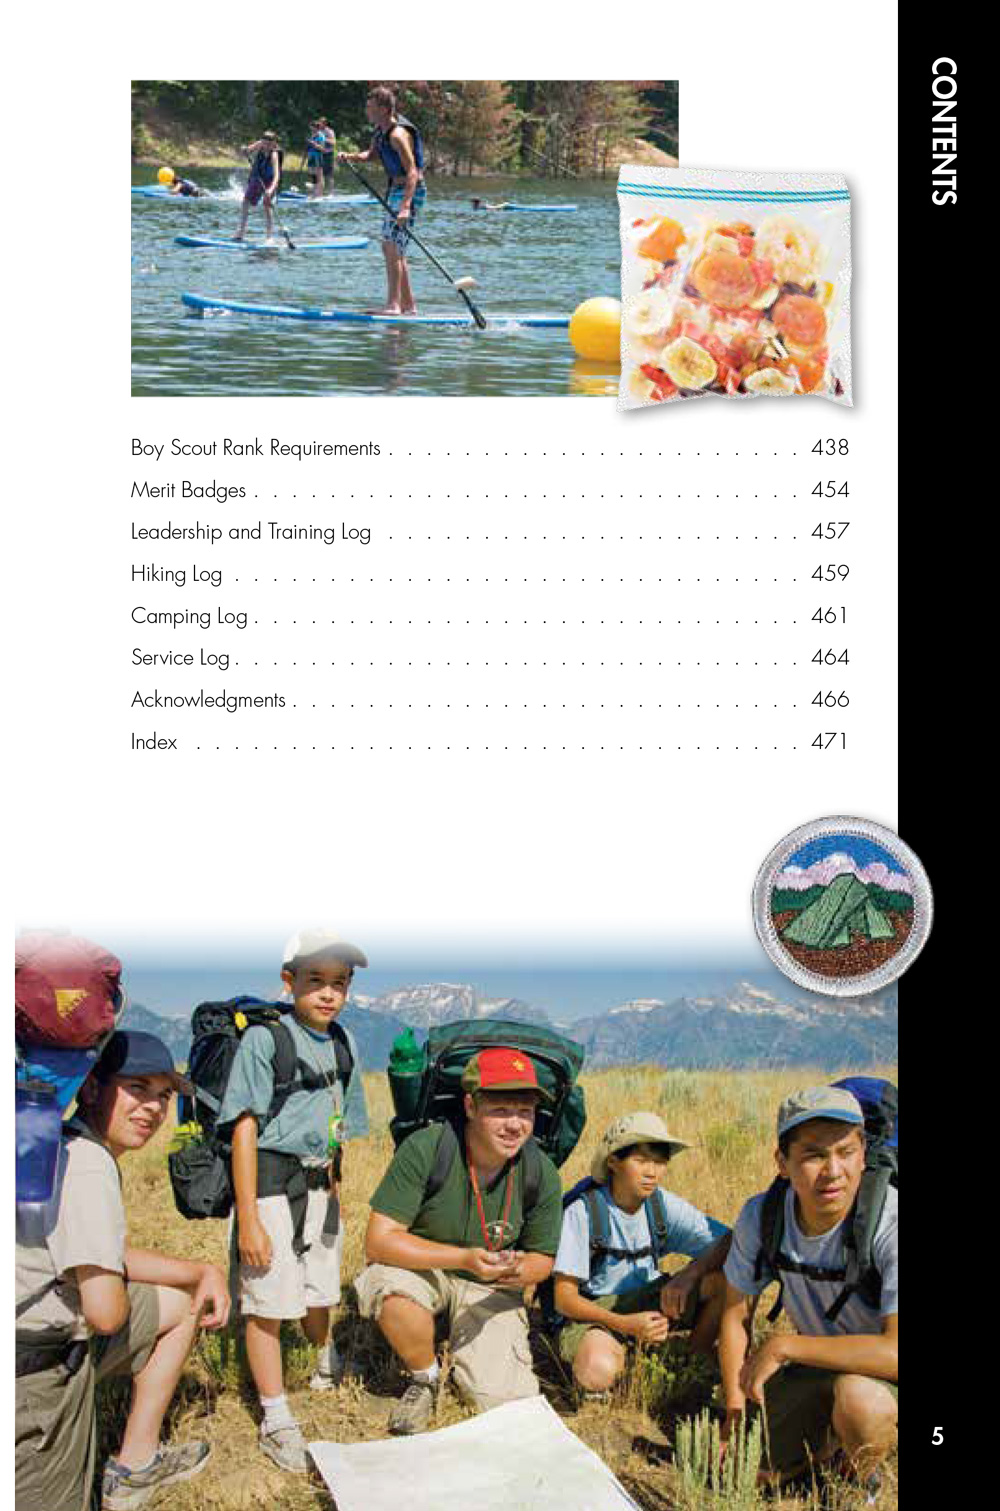 13th-edition-Boy-Scout-Handbook-contents-2